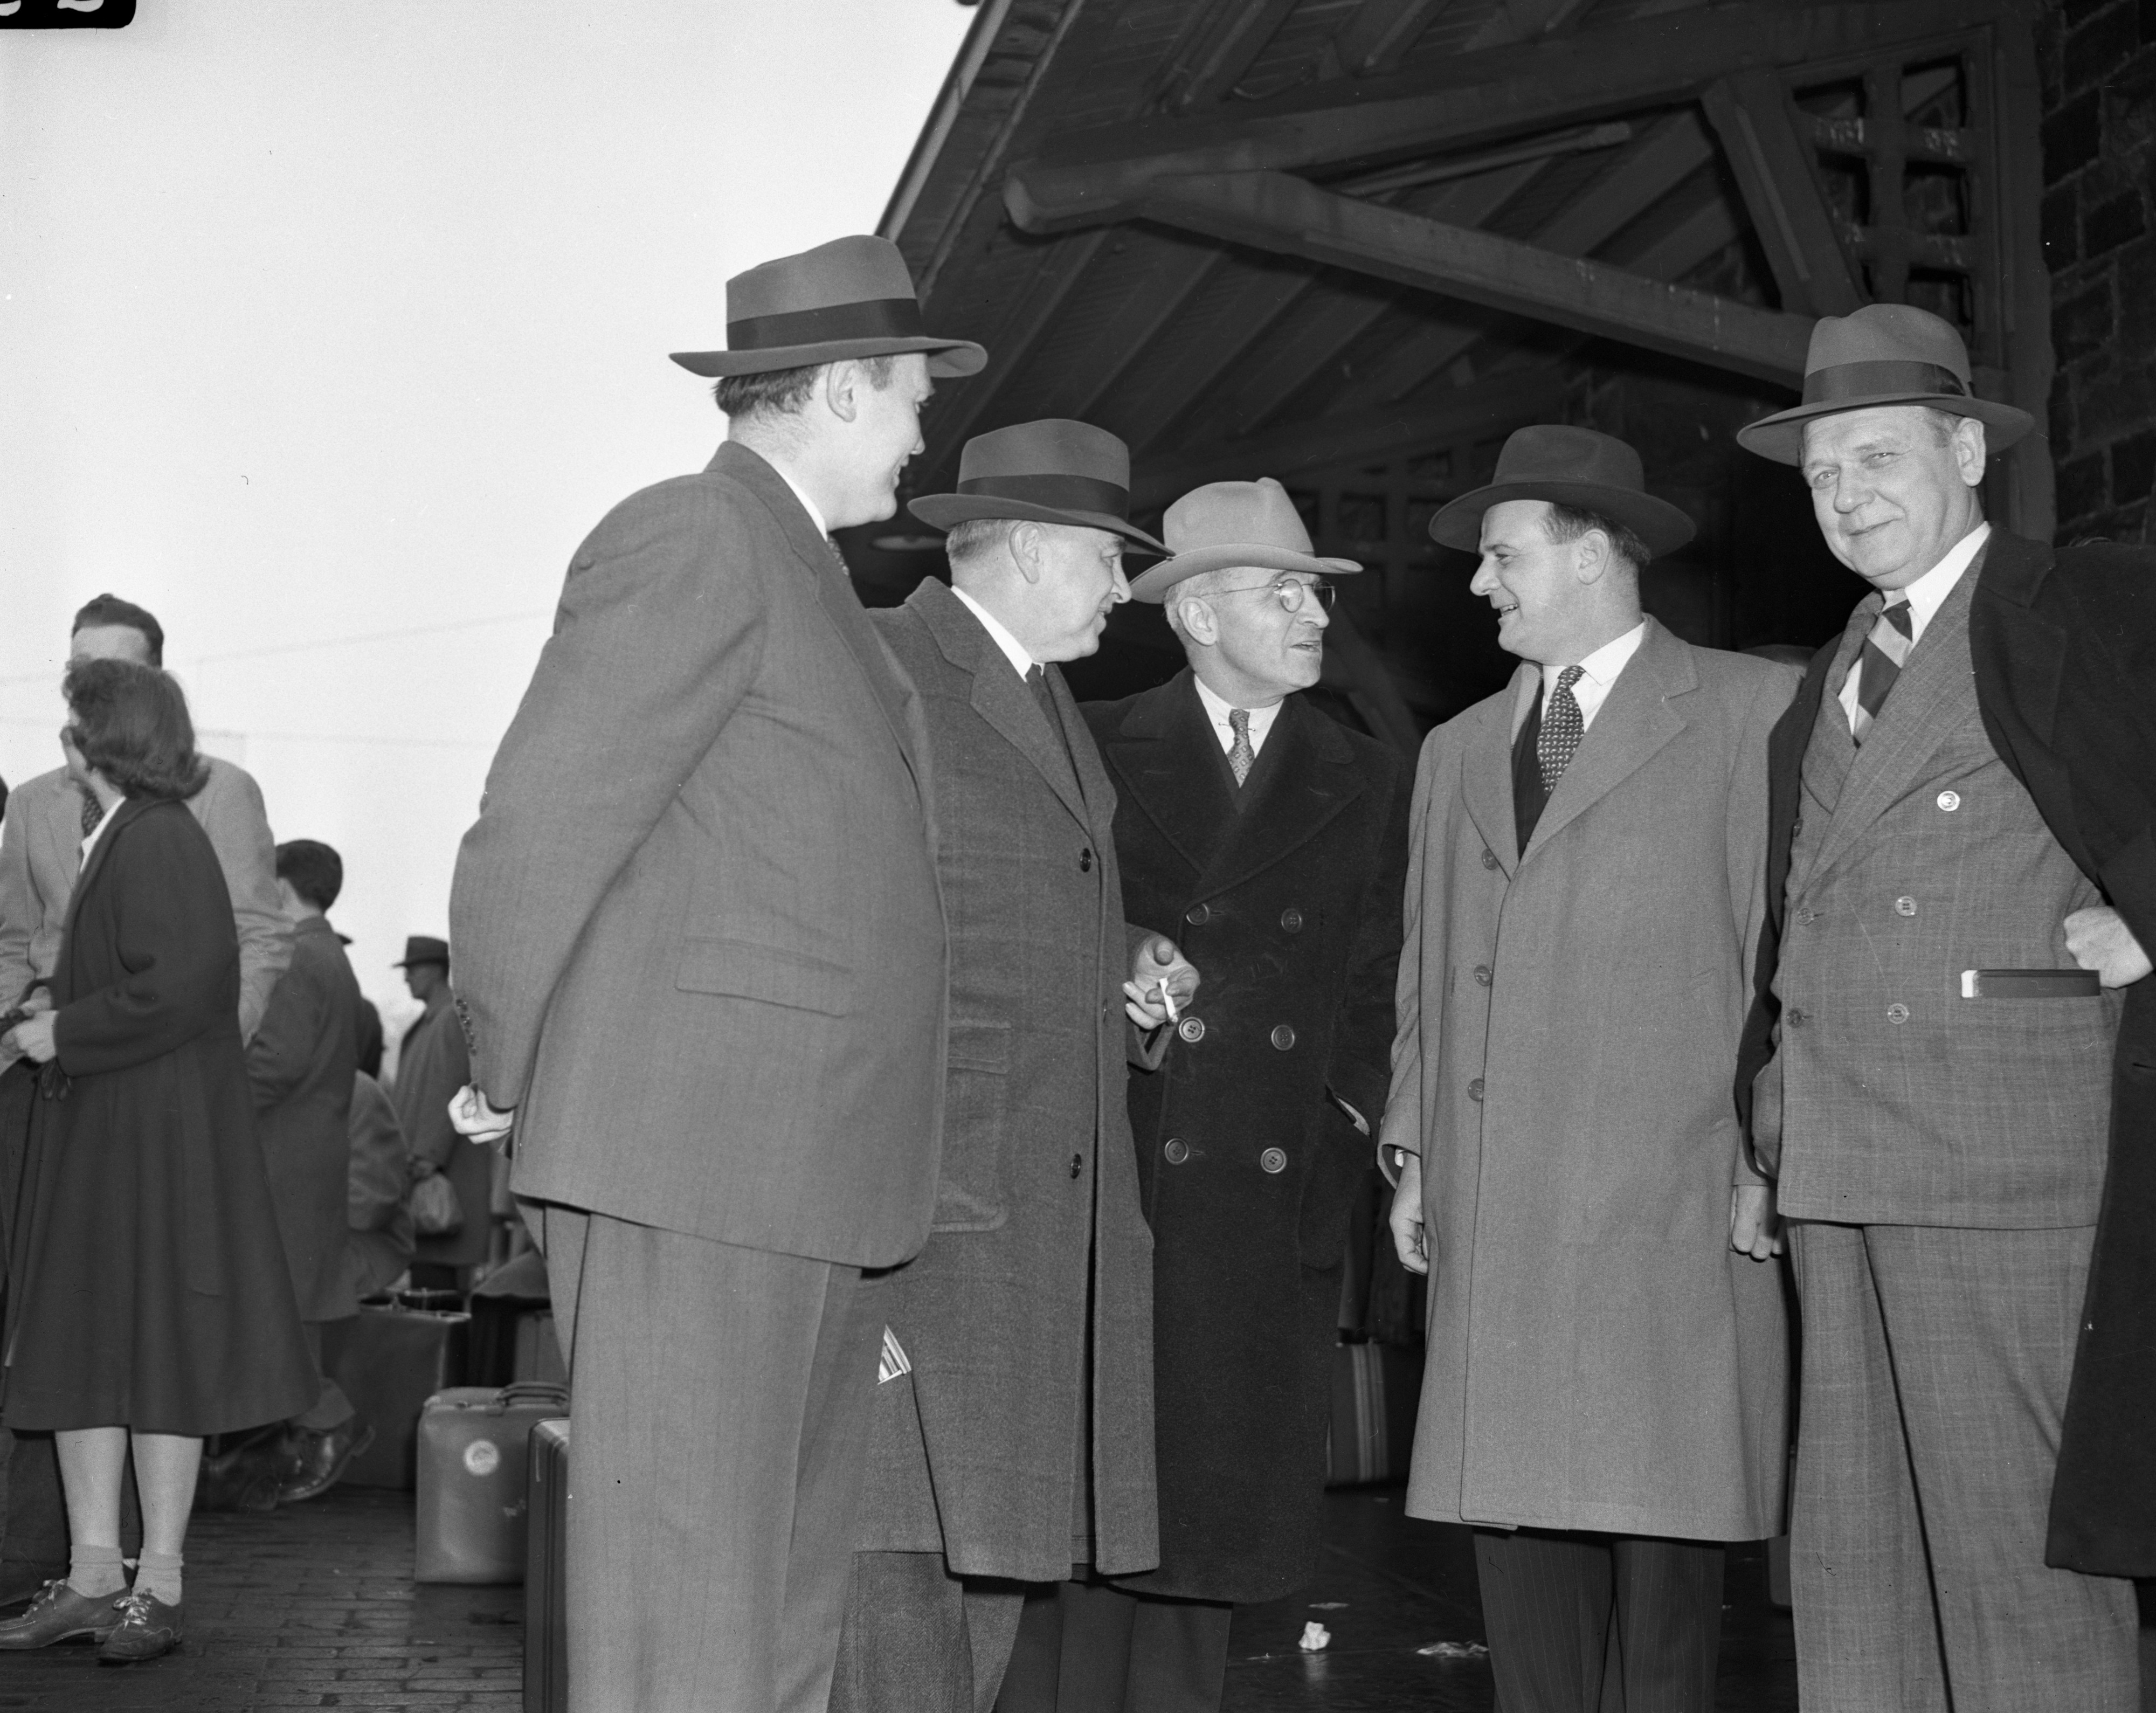 The War Production Investigating Committee visits Willow Run Bomber Plant (l to r), Hugh Fulton, Harley M. Kilgore, Harry S. Truman, George Meader, and Mon C. Wallgren, February 1943 image